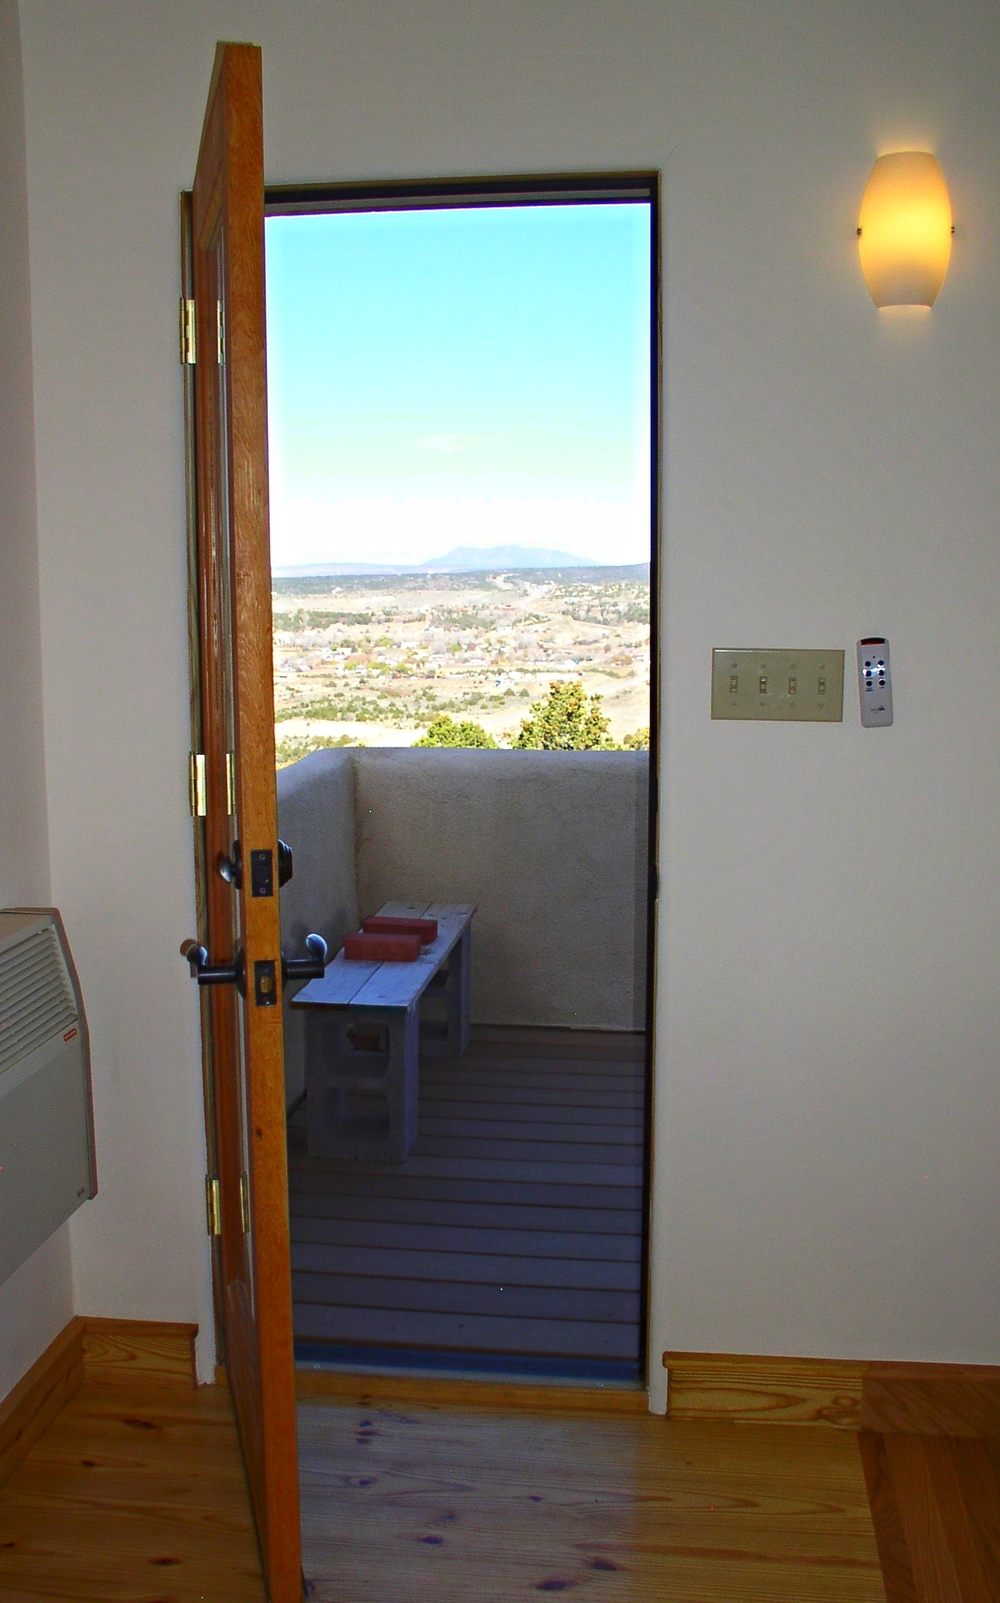 Doorway to deck.